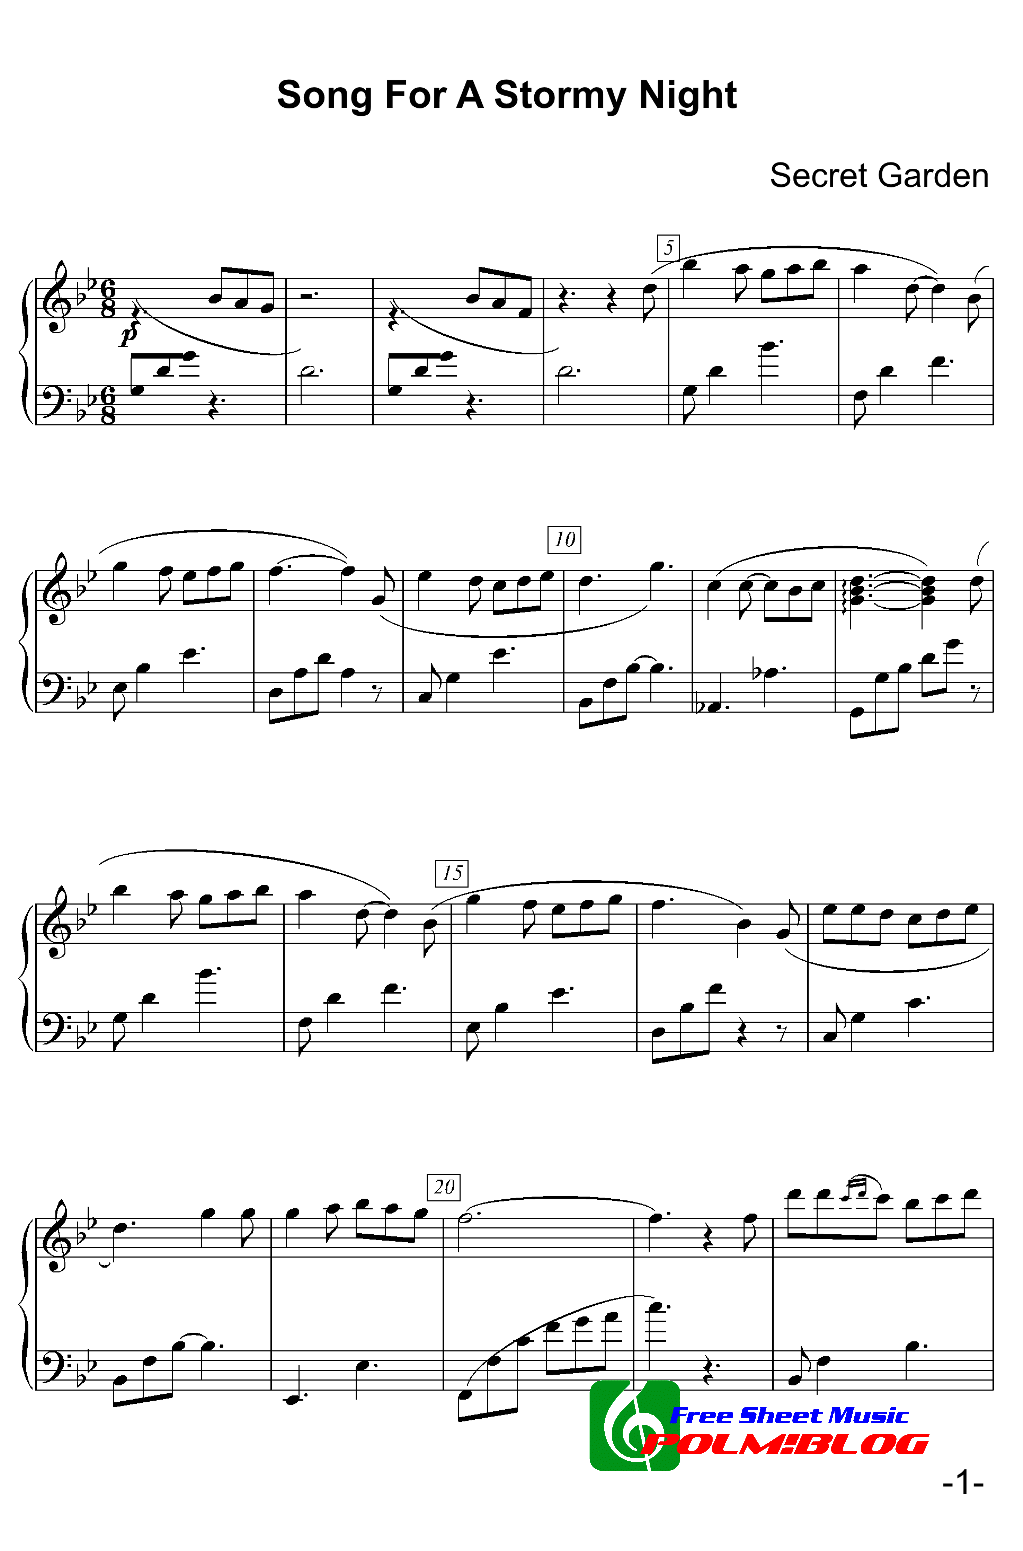 Sleepsong Secret Garden Piano Sheet Music Free Song From